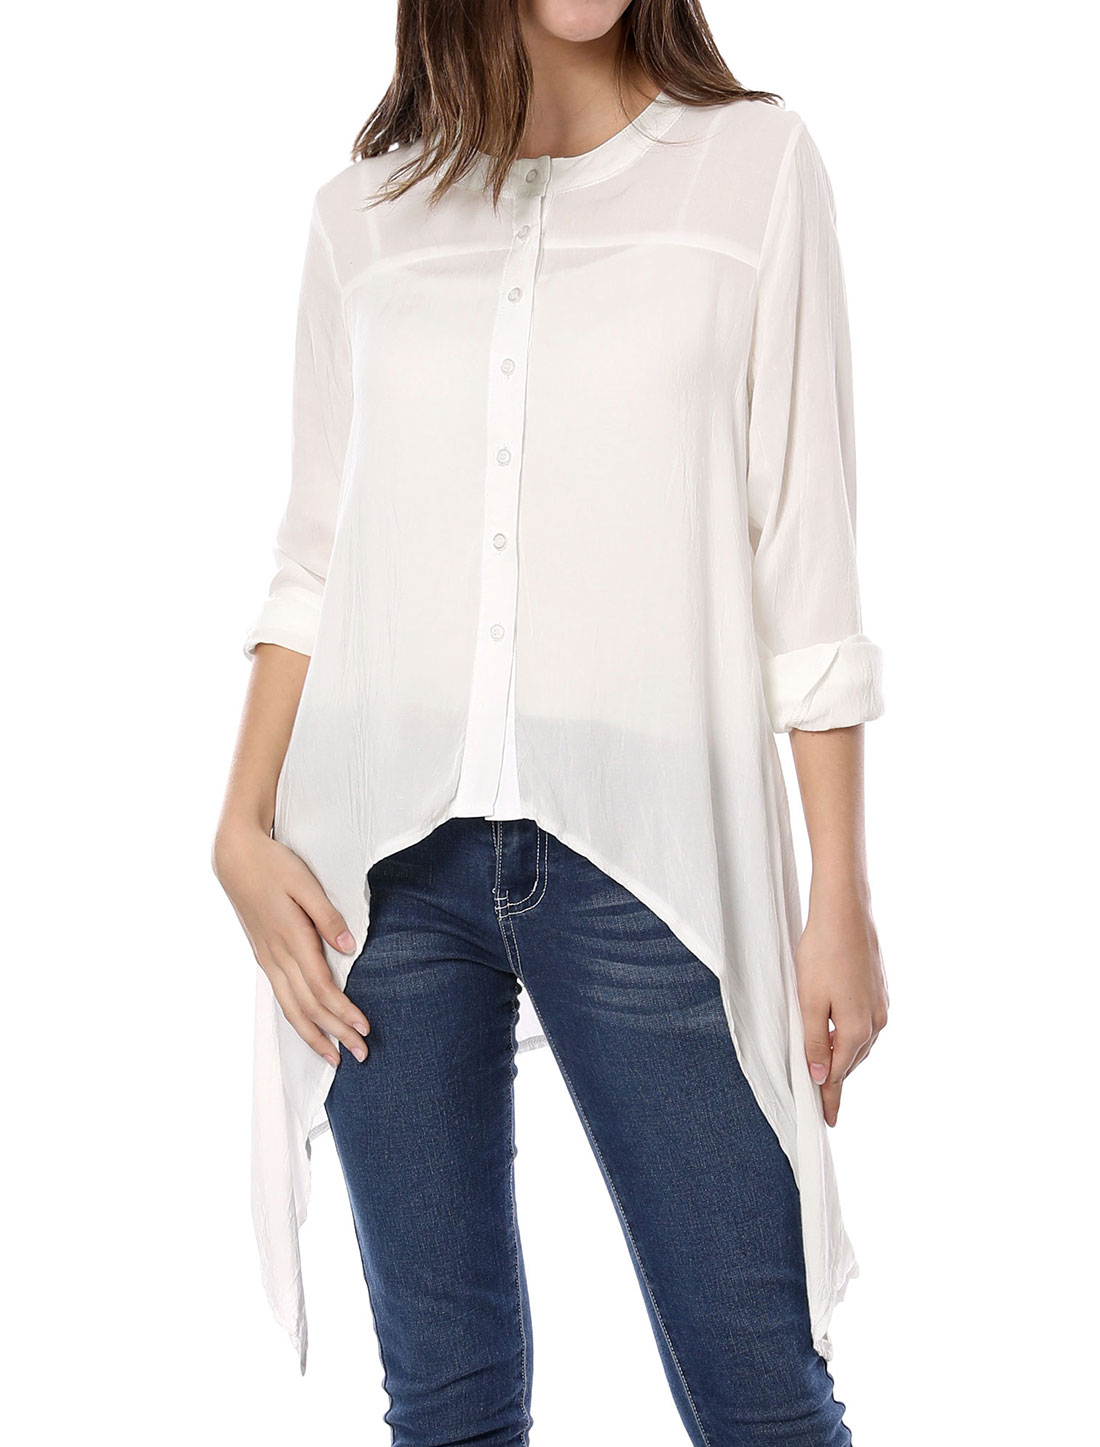 Single-Breasted Front Pure Off White Casual Blouse M for Lady